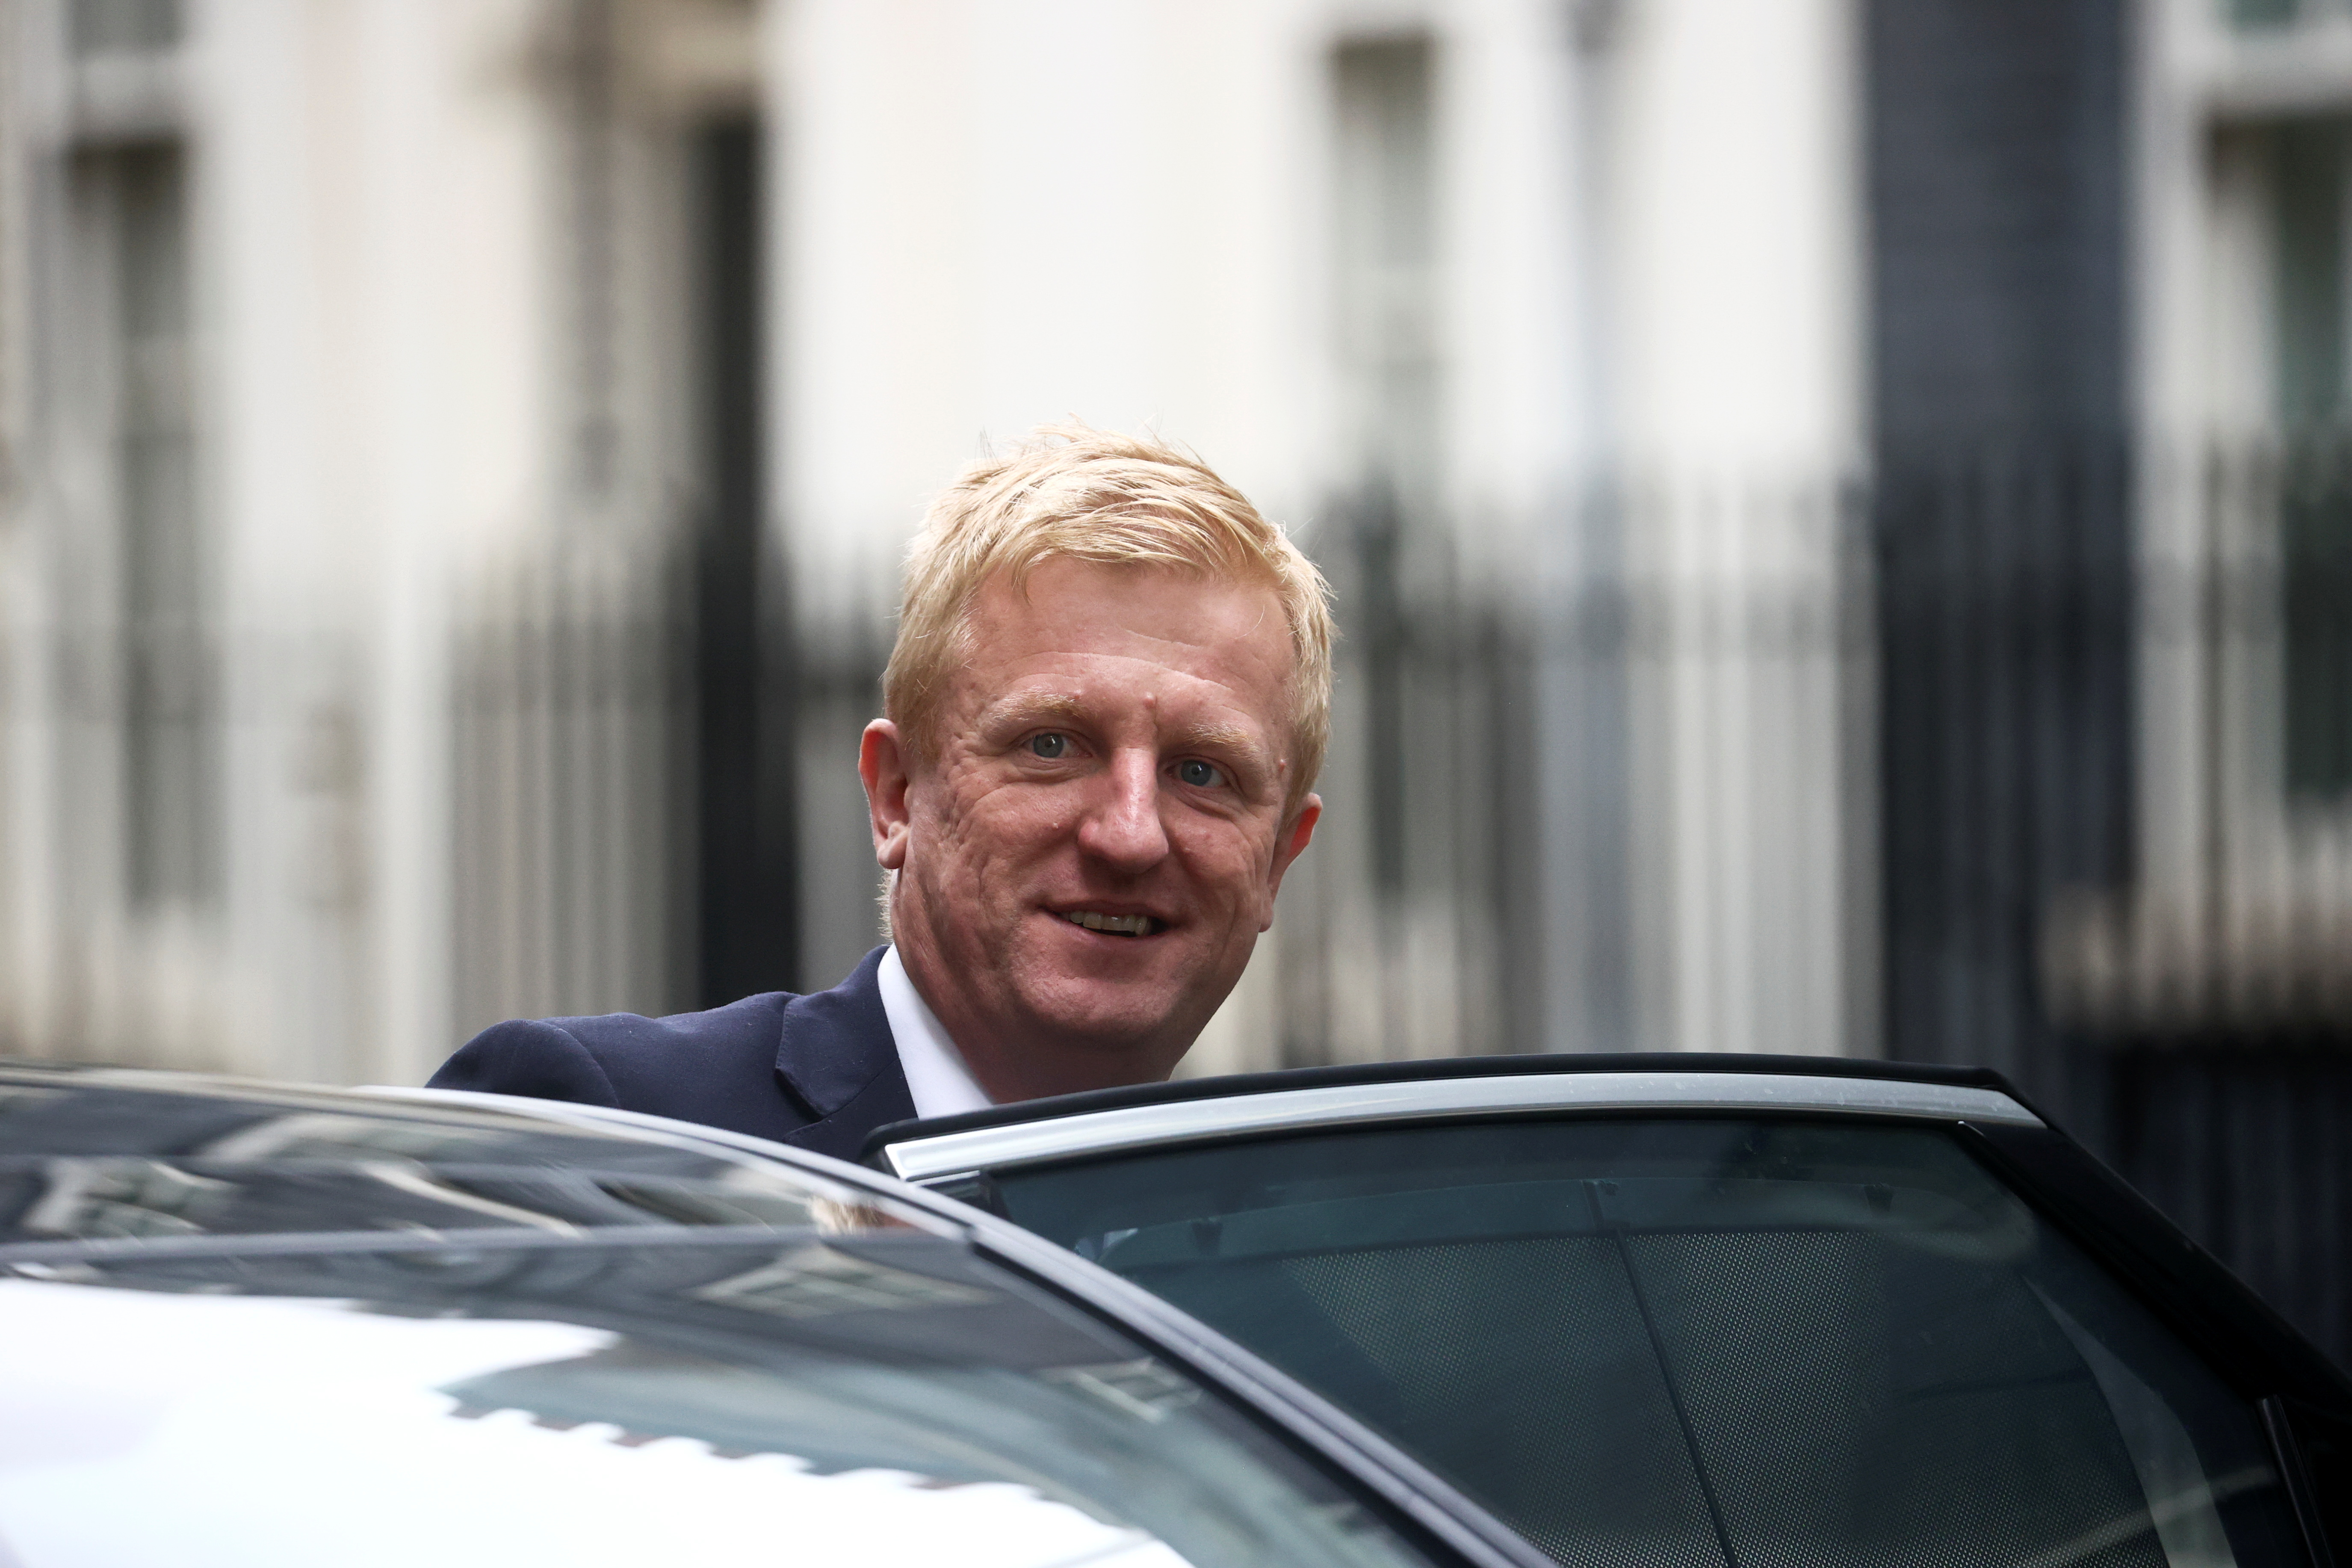 Britain's Secretary of State for Digital, Culture, Media and Sport Oliver Dowden gets into a car outside Downing Street in London, Britain, September 15, 2021. REUTERS/Hannah McKay/File Photo